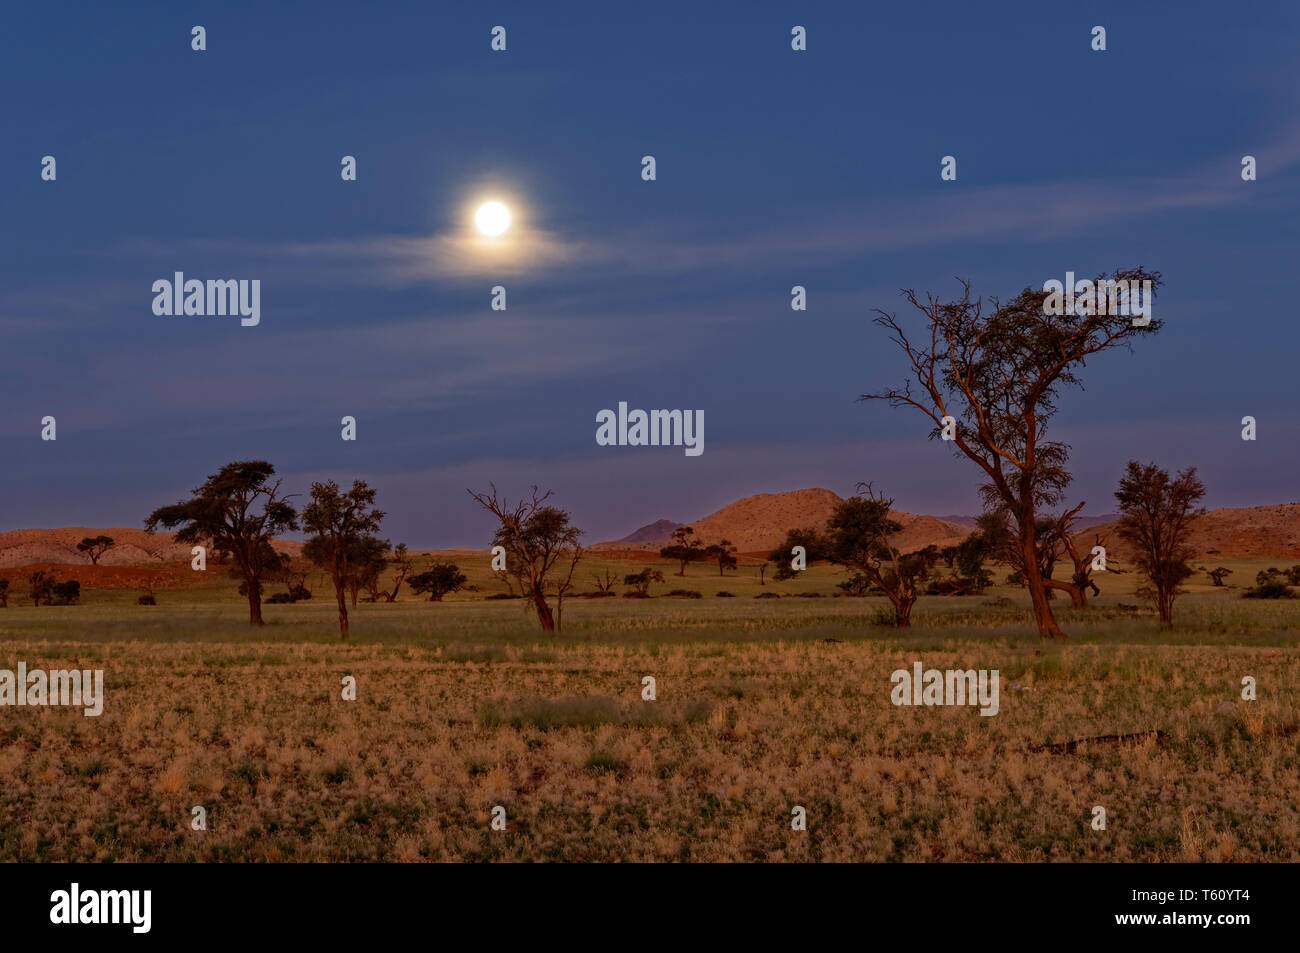 Moon over Namib Desert in Tsondab Valley Scenic Reserve, camel thorn trees (Acacia erioloba) in the foreground District Windhoek Namibia - Stock Image